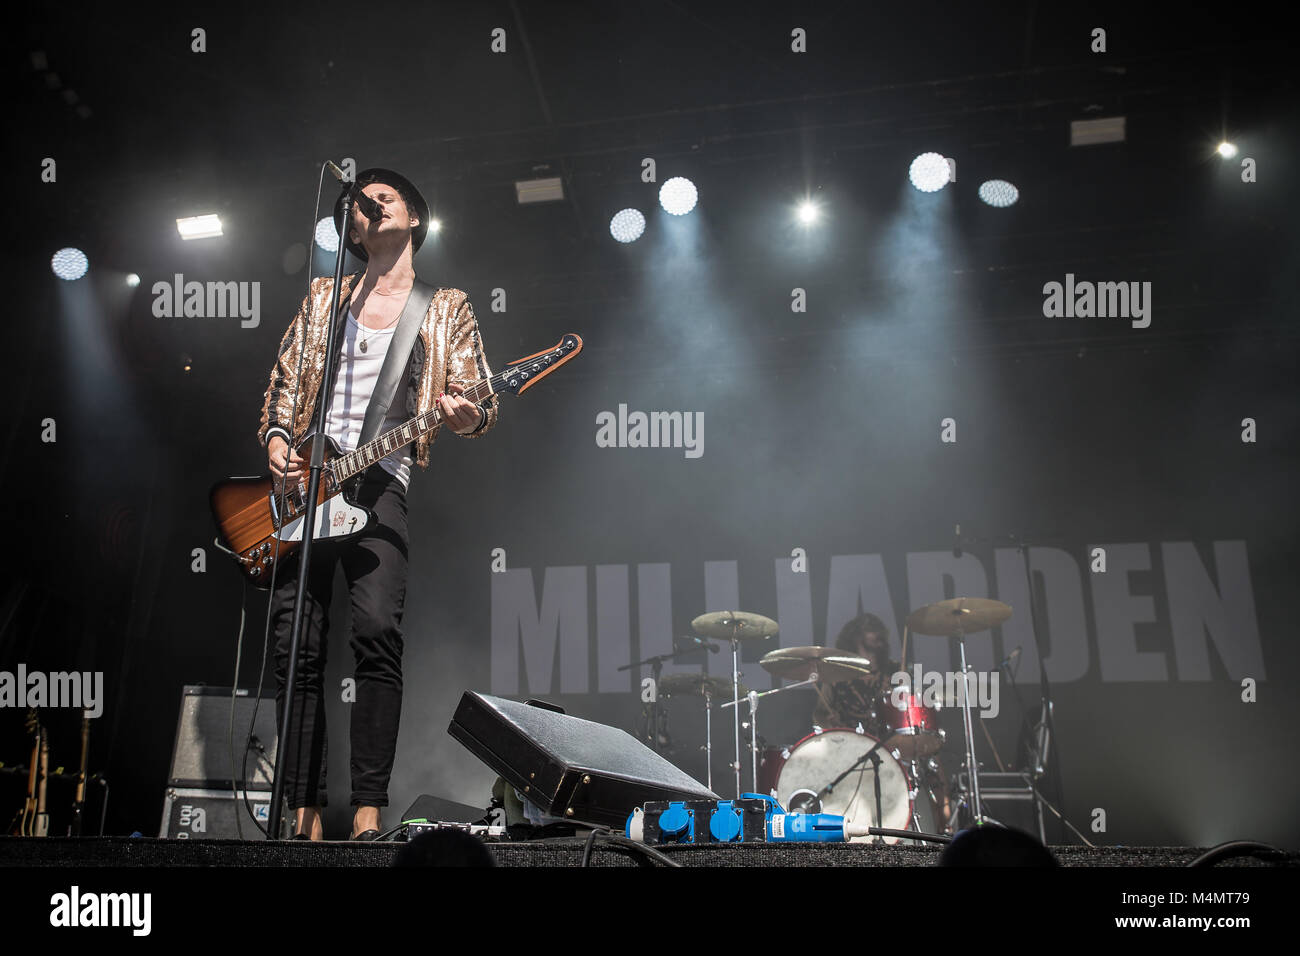 Milliarden - Stock Image